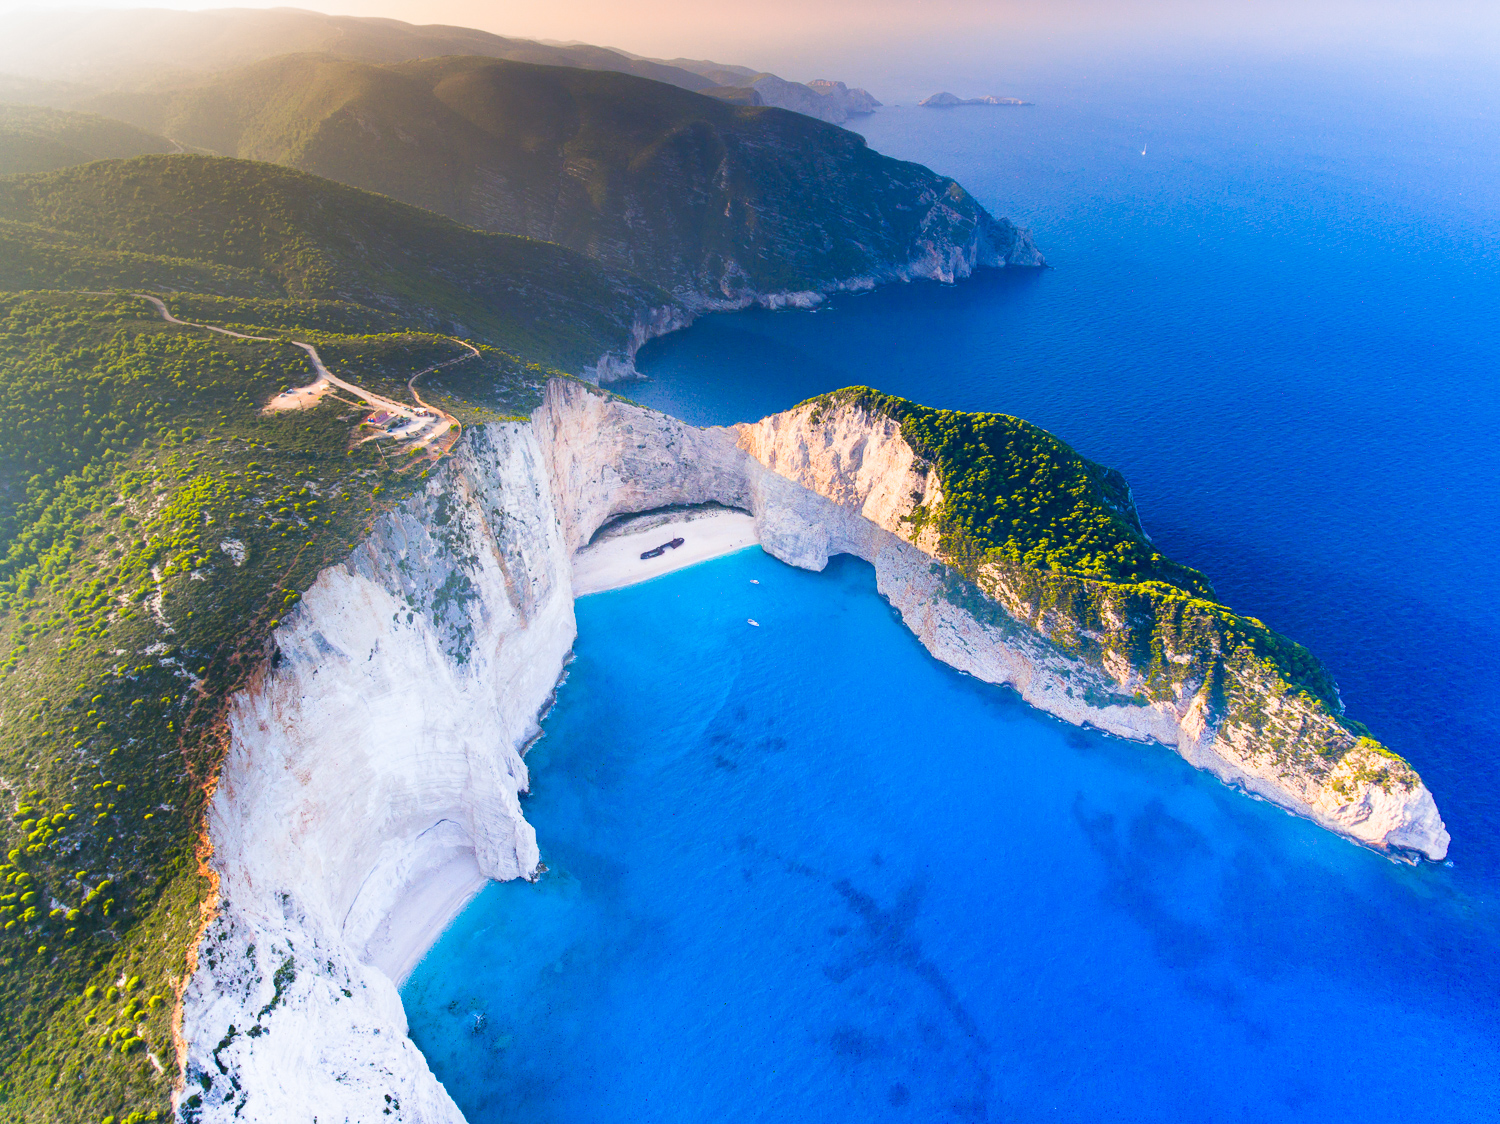 aerial drone photo taken on a trip from Liverpool to Zakynthos